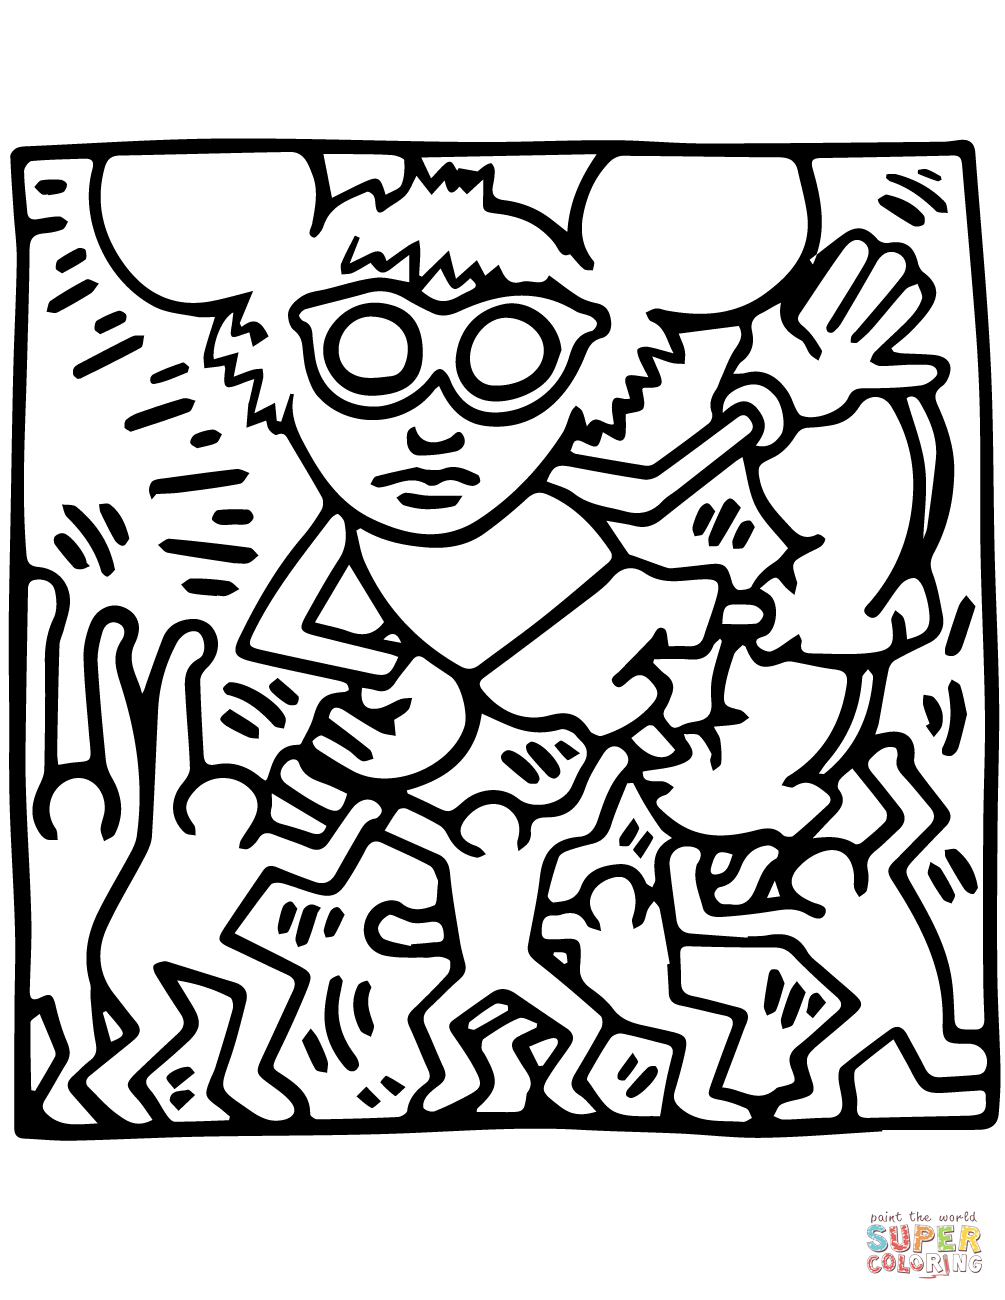 1005x1300 Andy Mouse By Keith Haring Coloring Page Free Printable Coloring